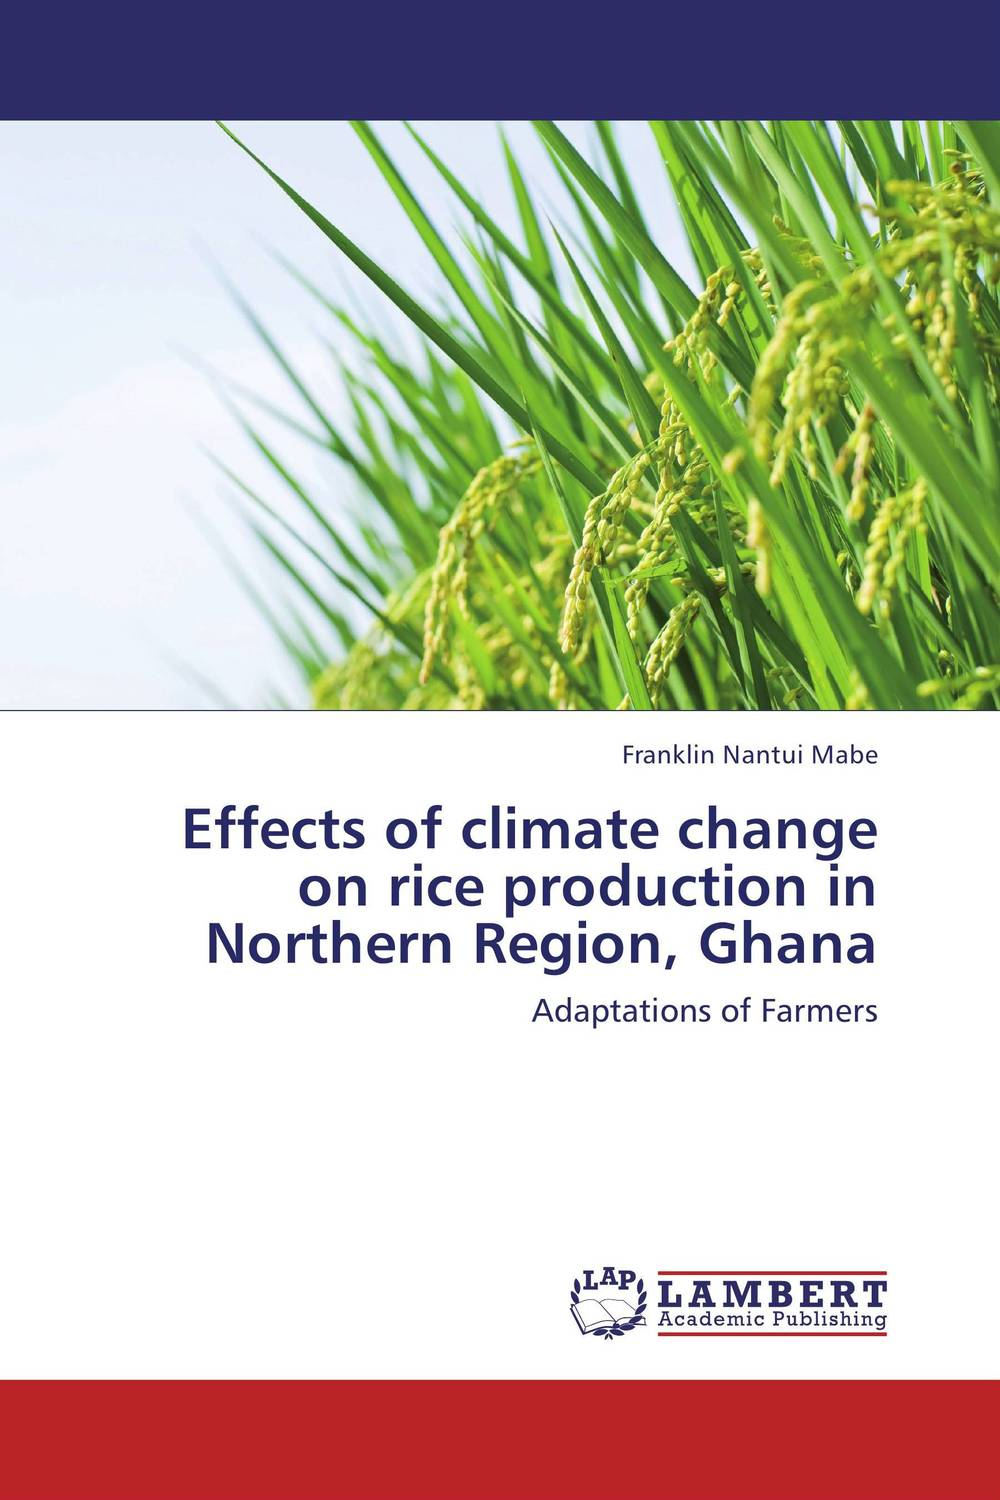 Effects of climate change on rice production in Northern Region, Ghana evaluation of land suitability for rice production in amhara region